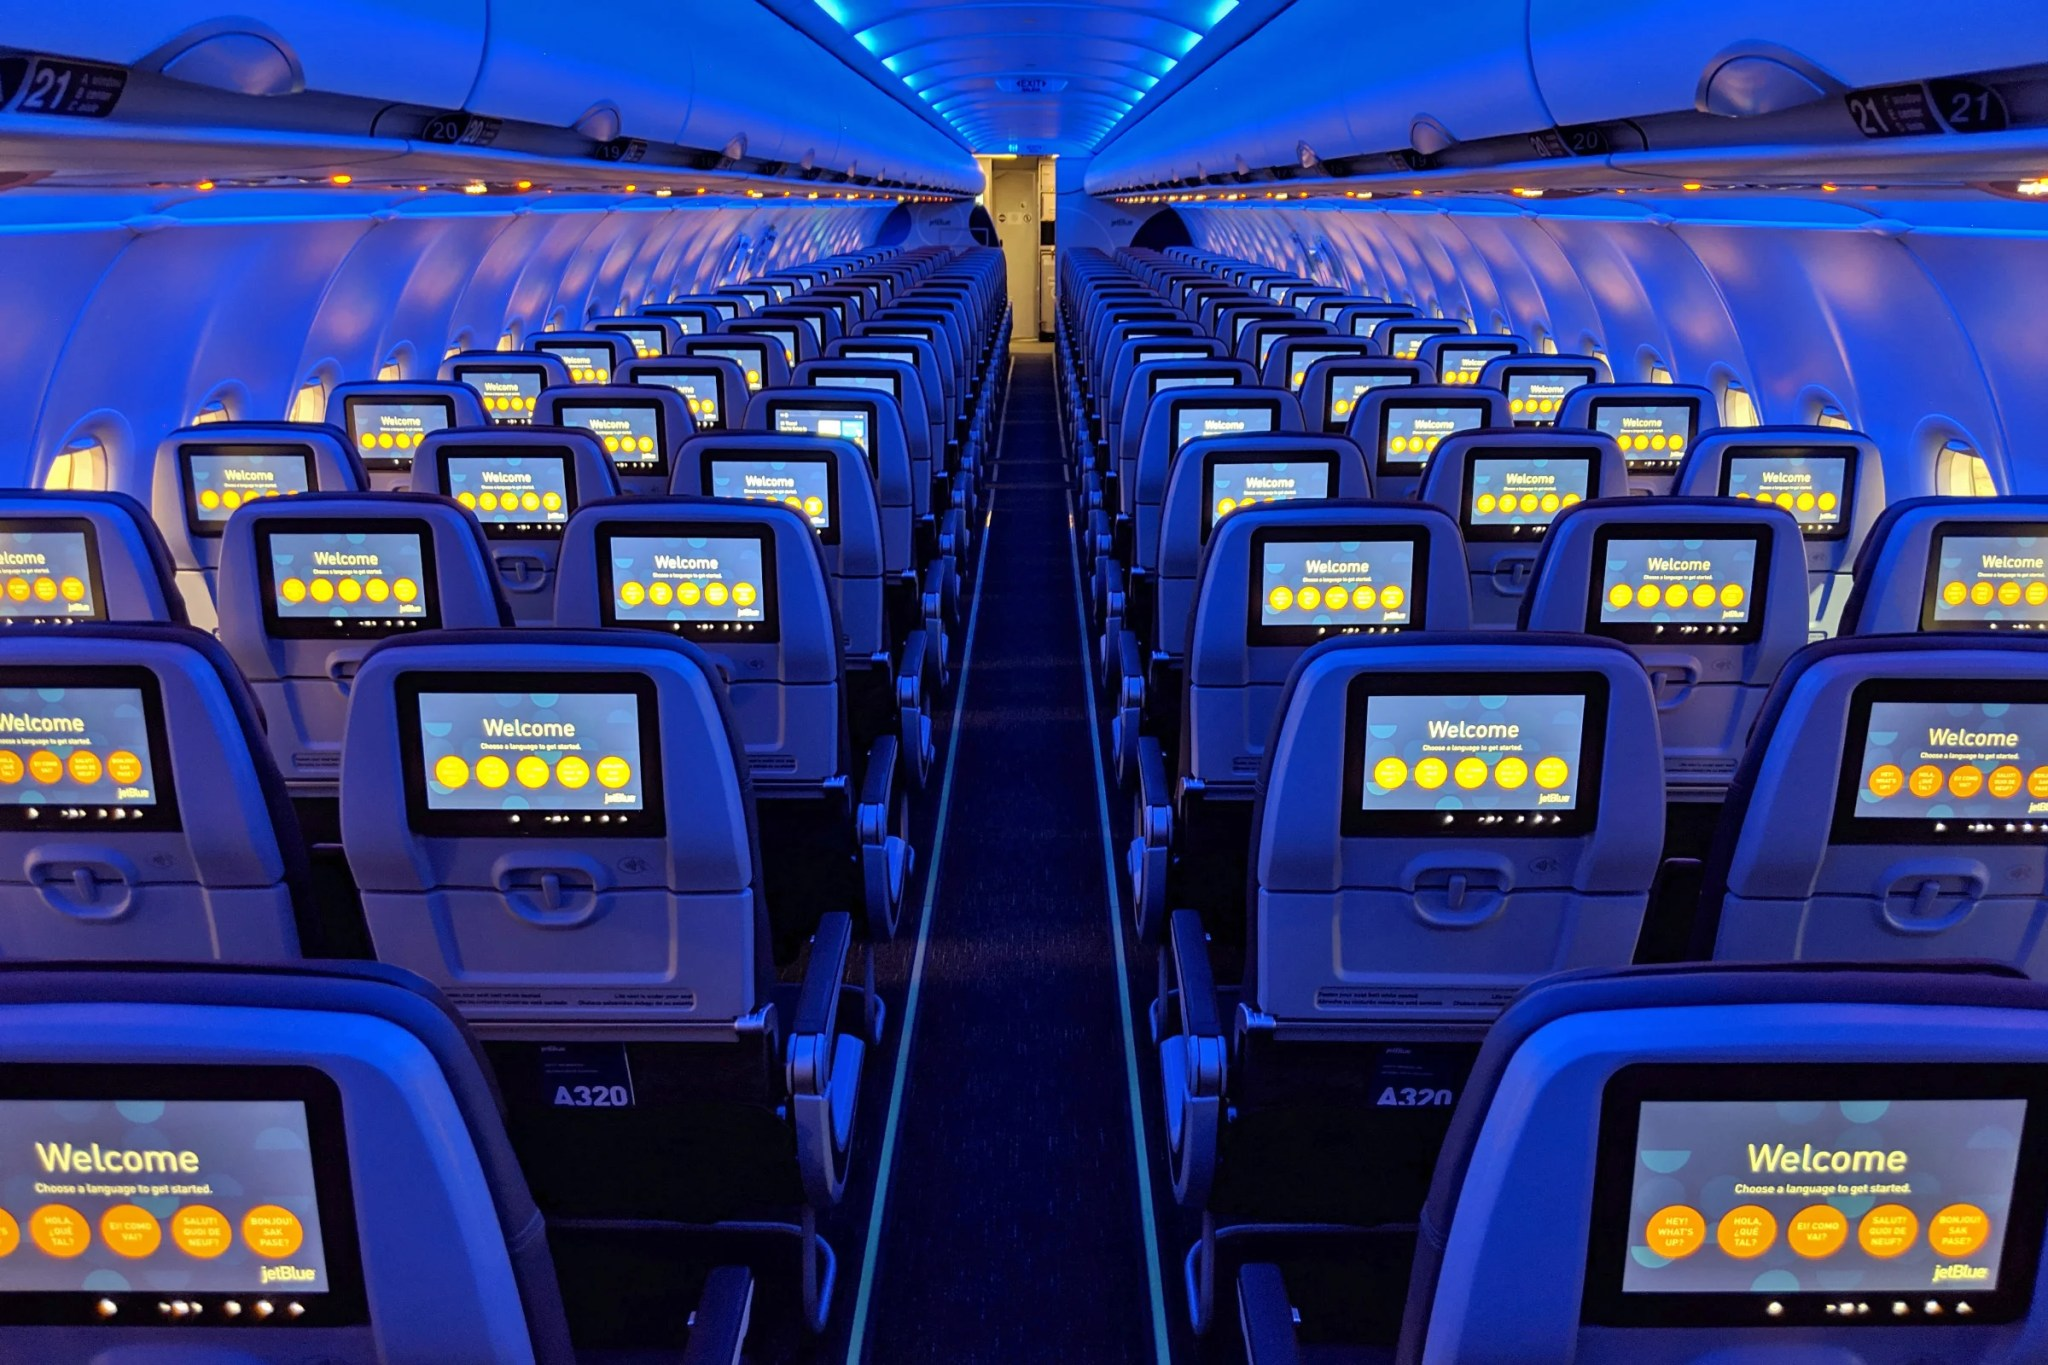 JetBlue to Start Flights JFK to Ecuador, With the A321neo